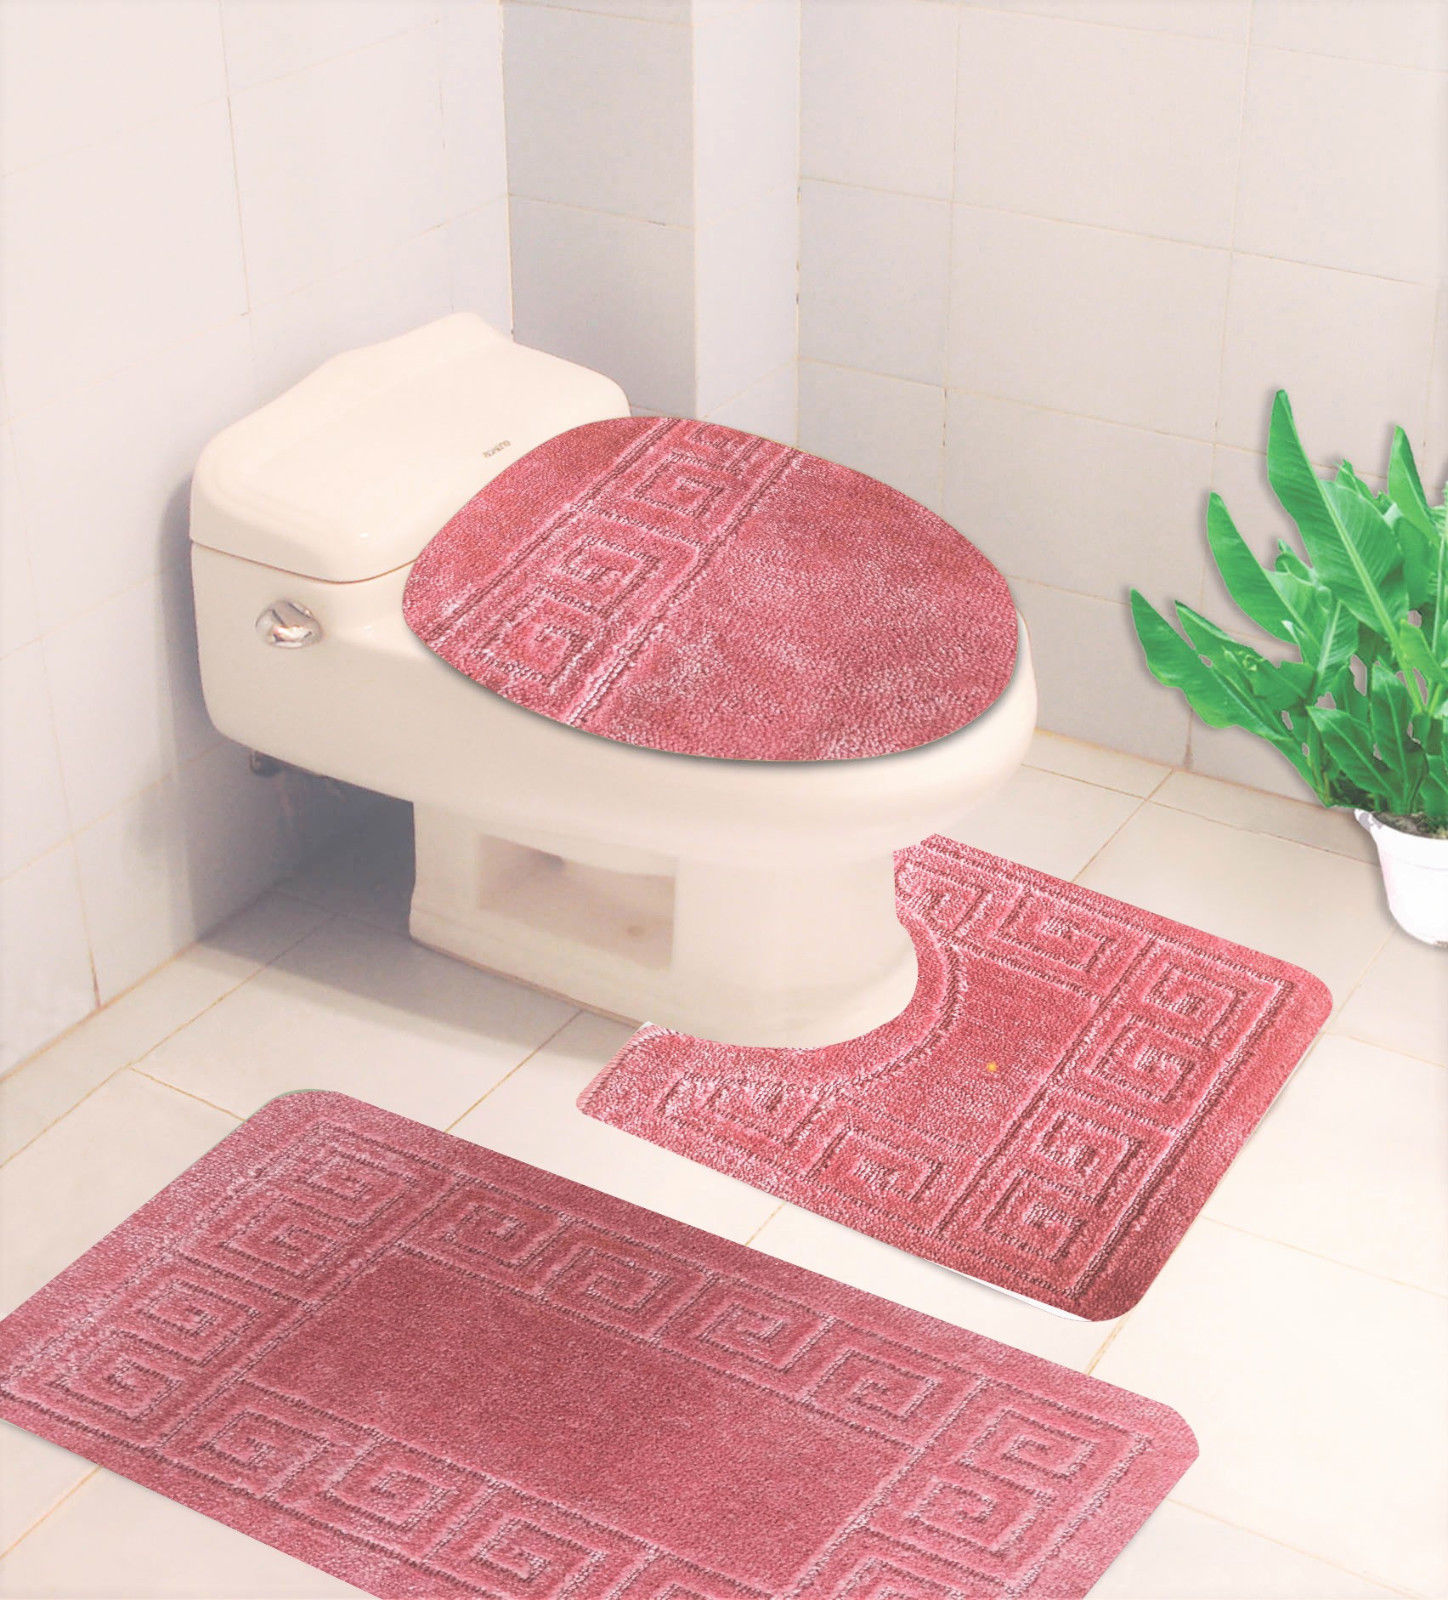 """Bathroom Mats Set 3 Piece - EMBOSSED Extra Soft Shower Bath Rugs Mat 30""""x19""""/Contour Mat 19""""x19""""/ Toilet Lid Cover 19""""x19"""" , Washable Non Slip Mat Set for Kitchen, Shower, and Toilet, I3766"""